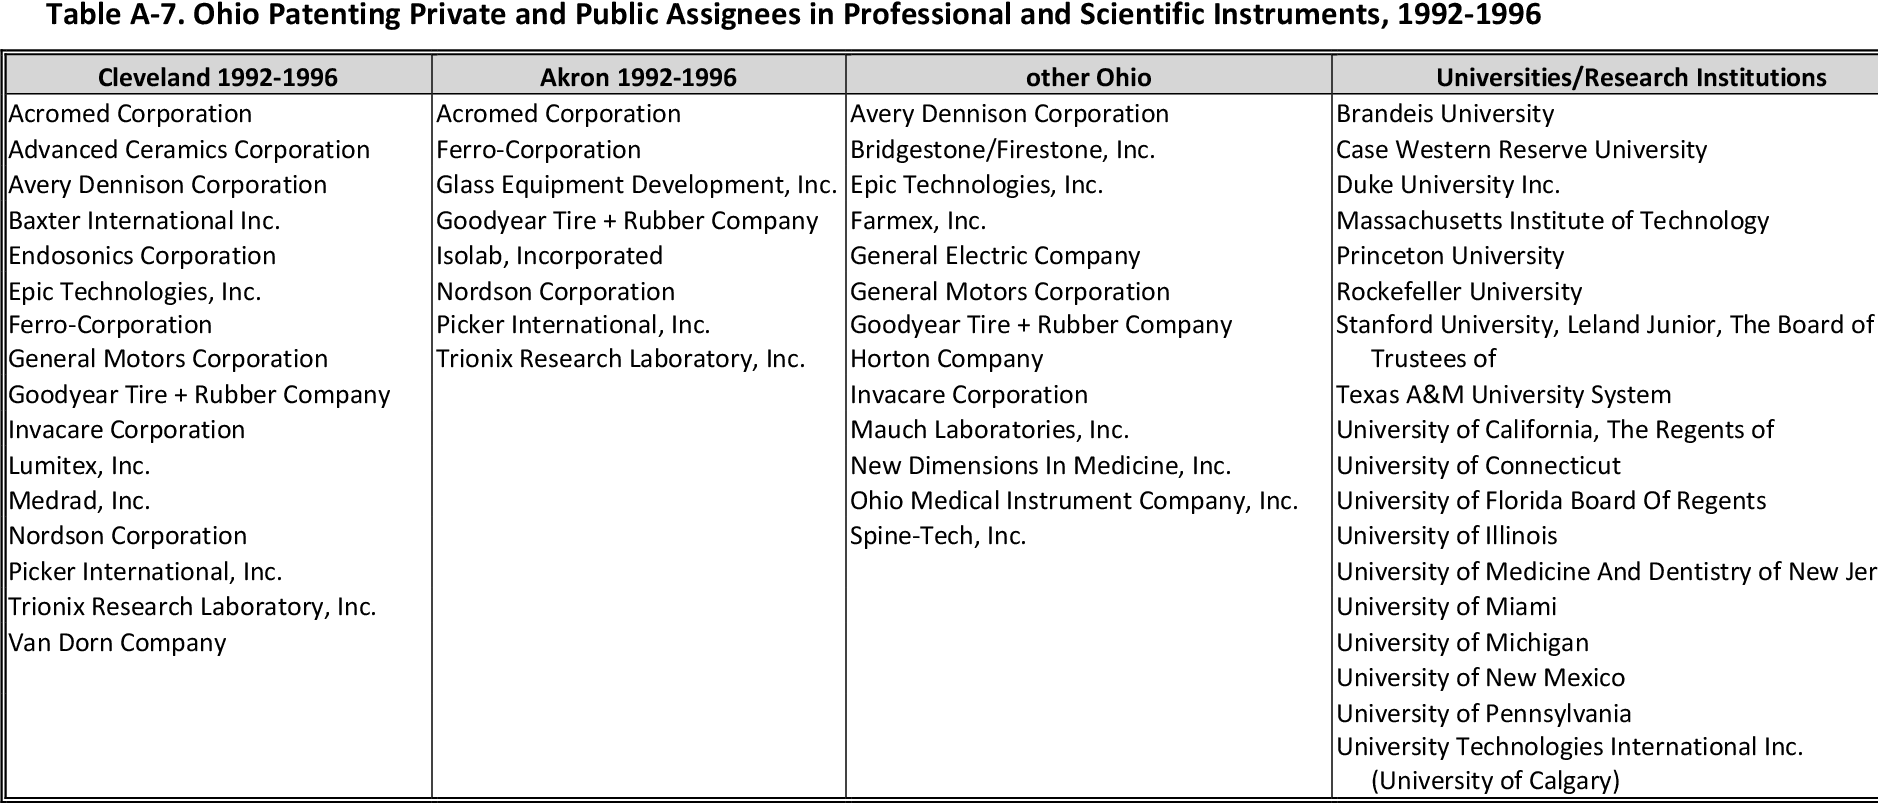 Table 4 from Patenting by Cleveland's Inventors: Critical